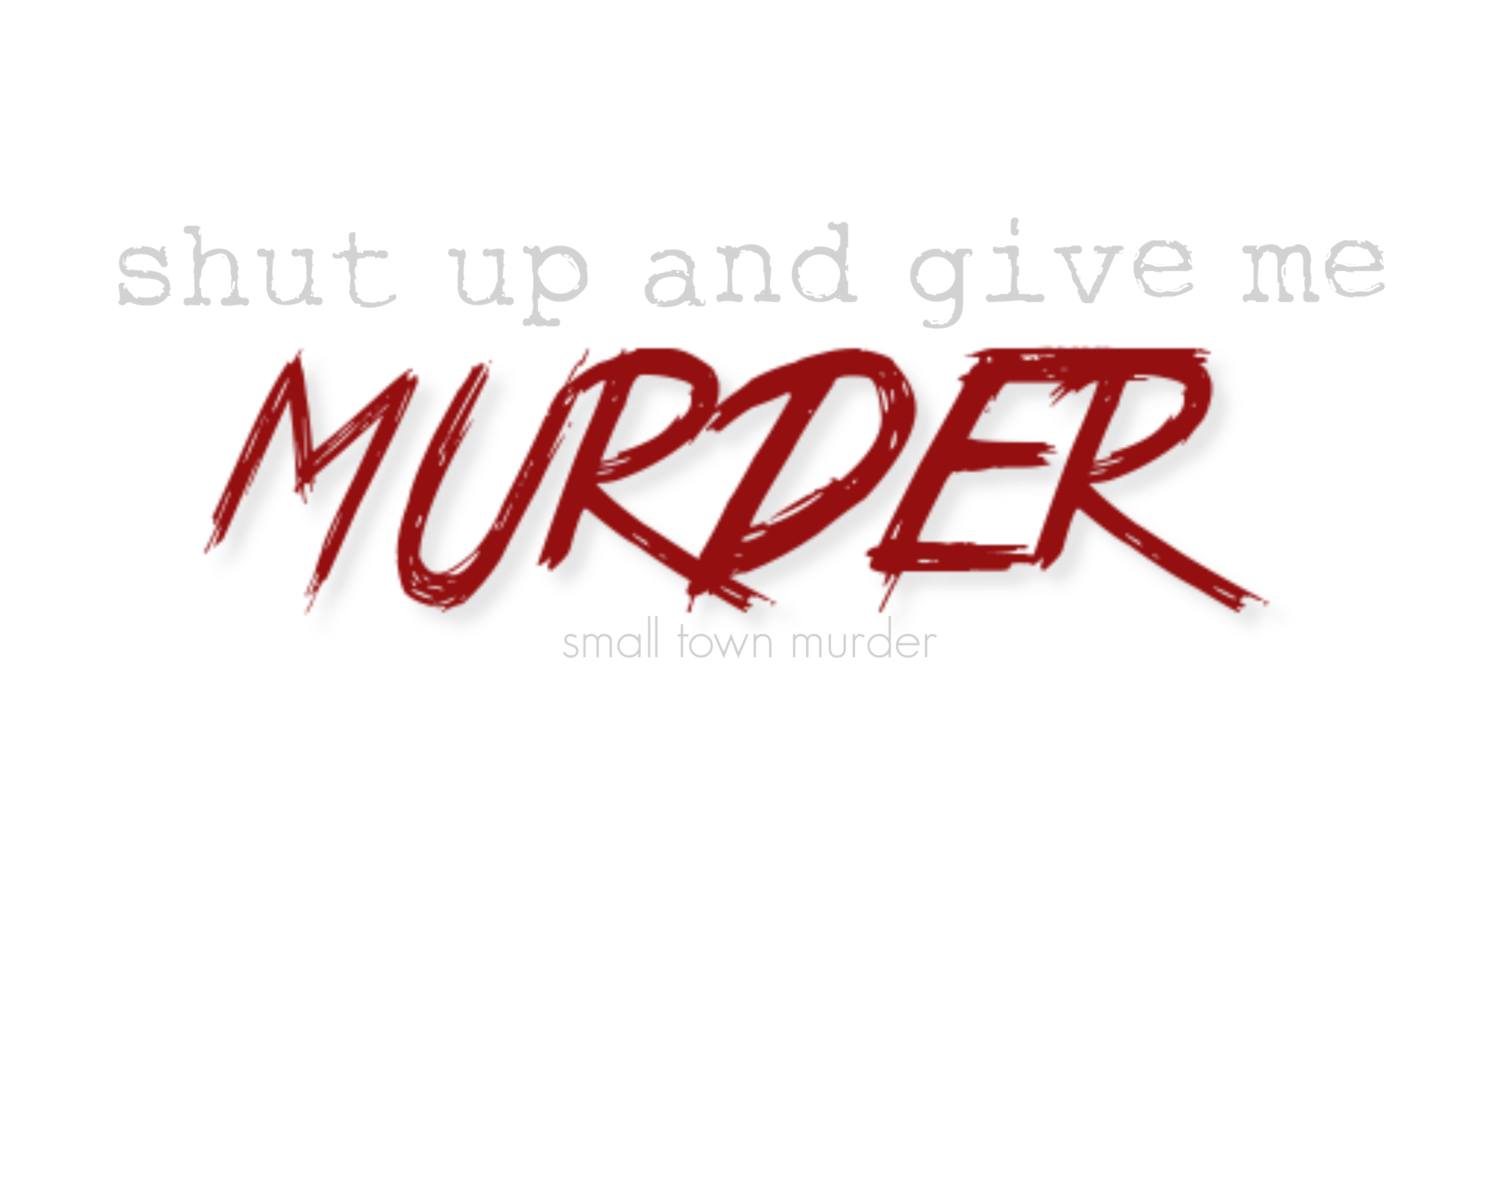 SHUT UP AND GIVE ME MURDER!